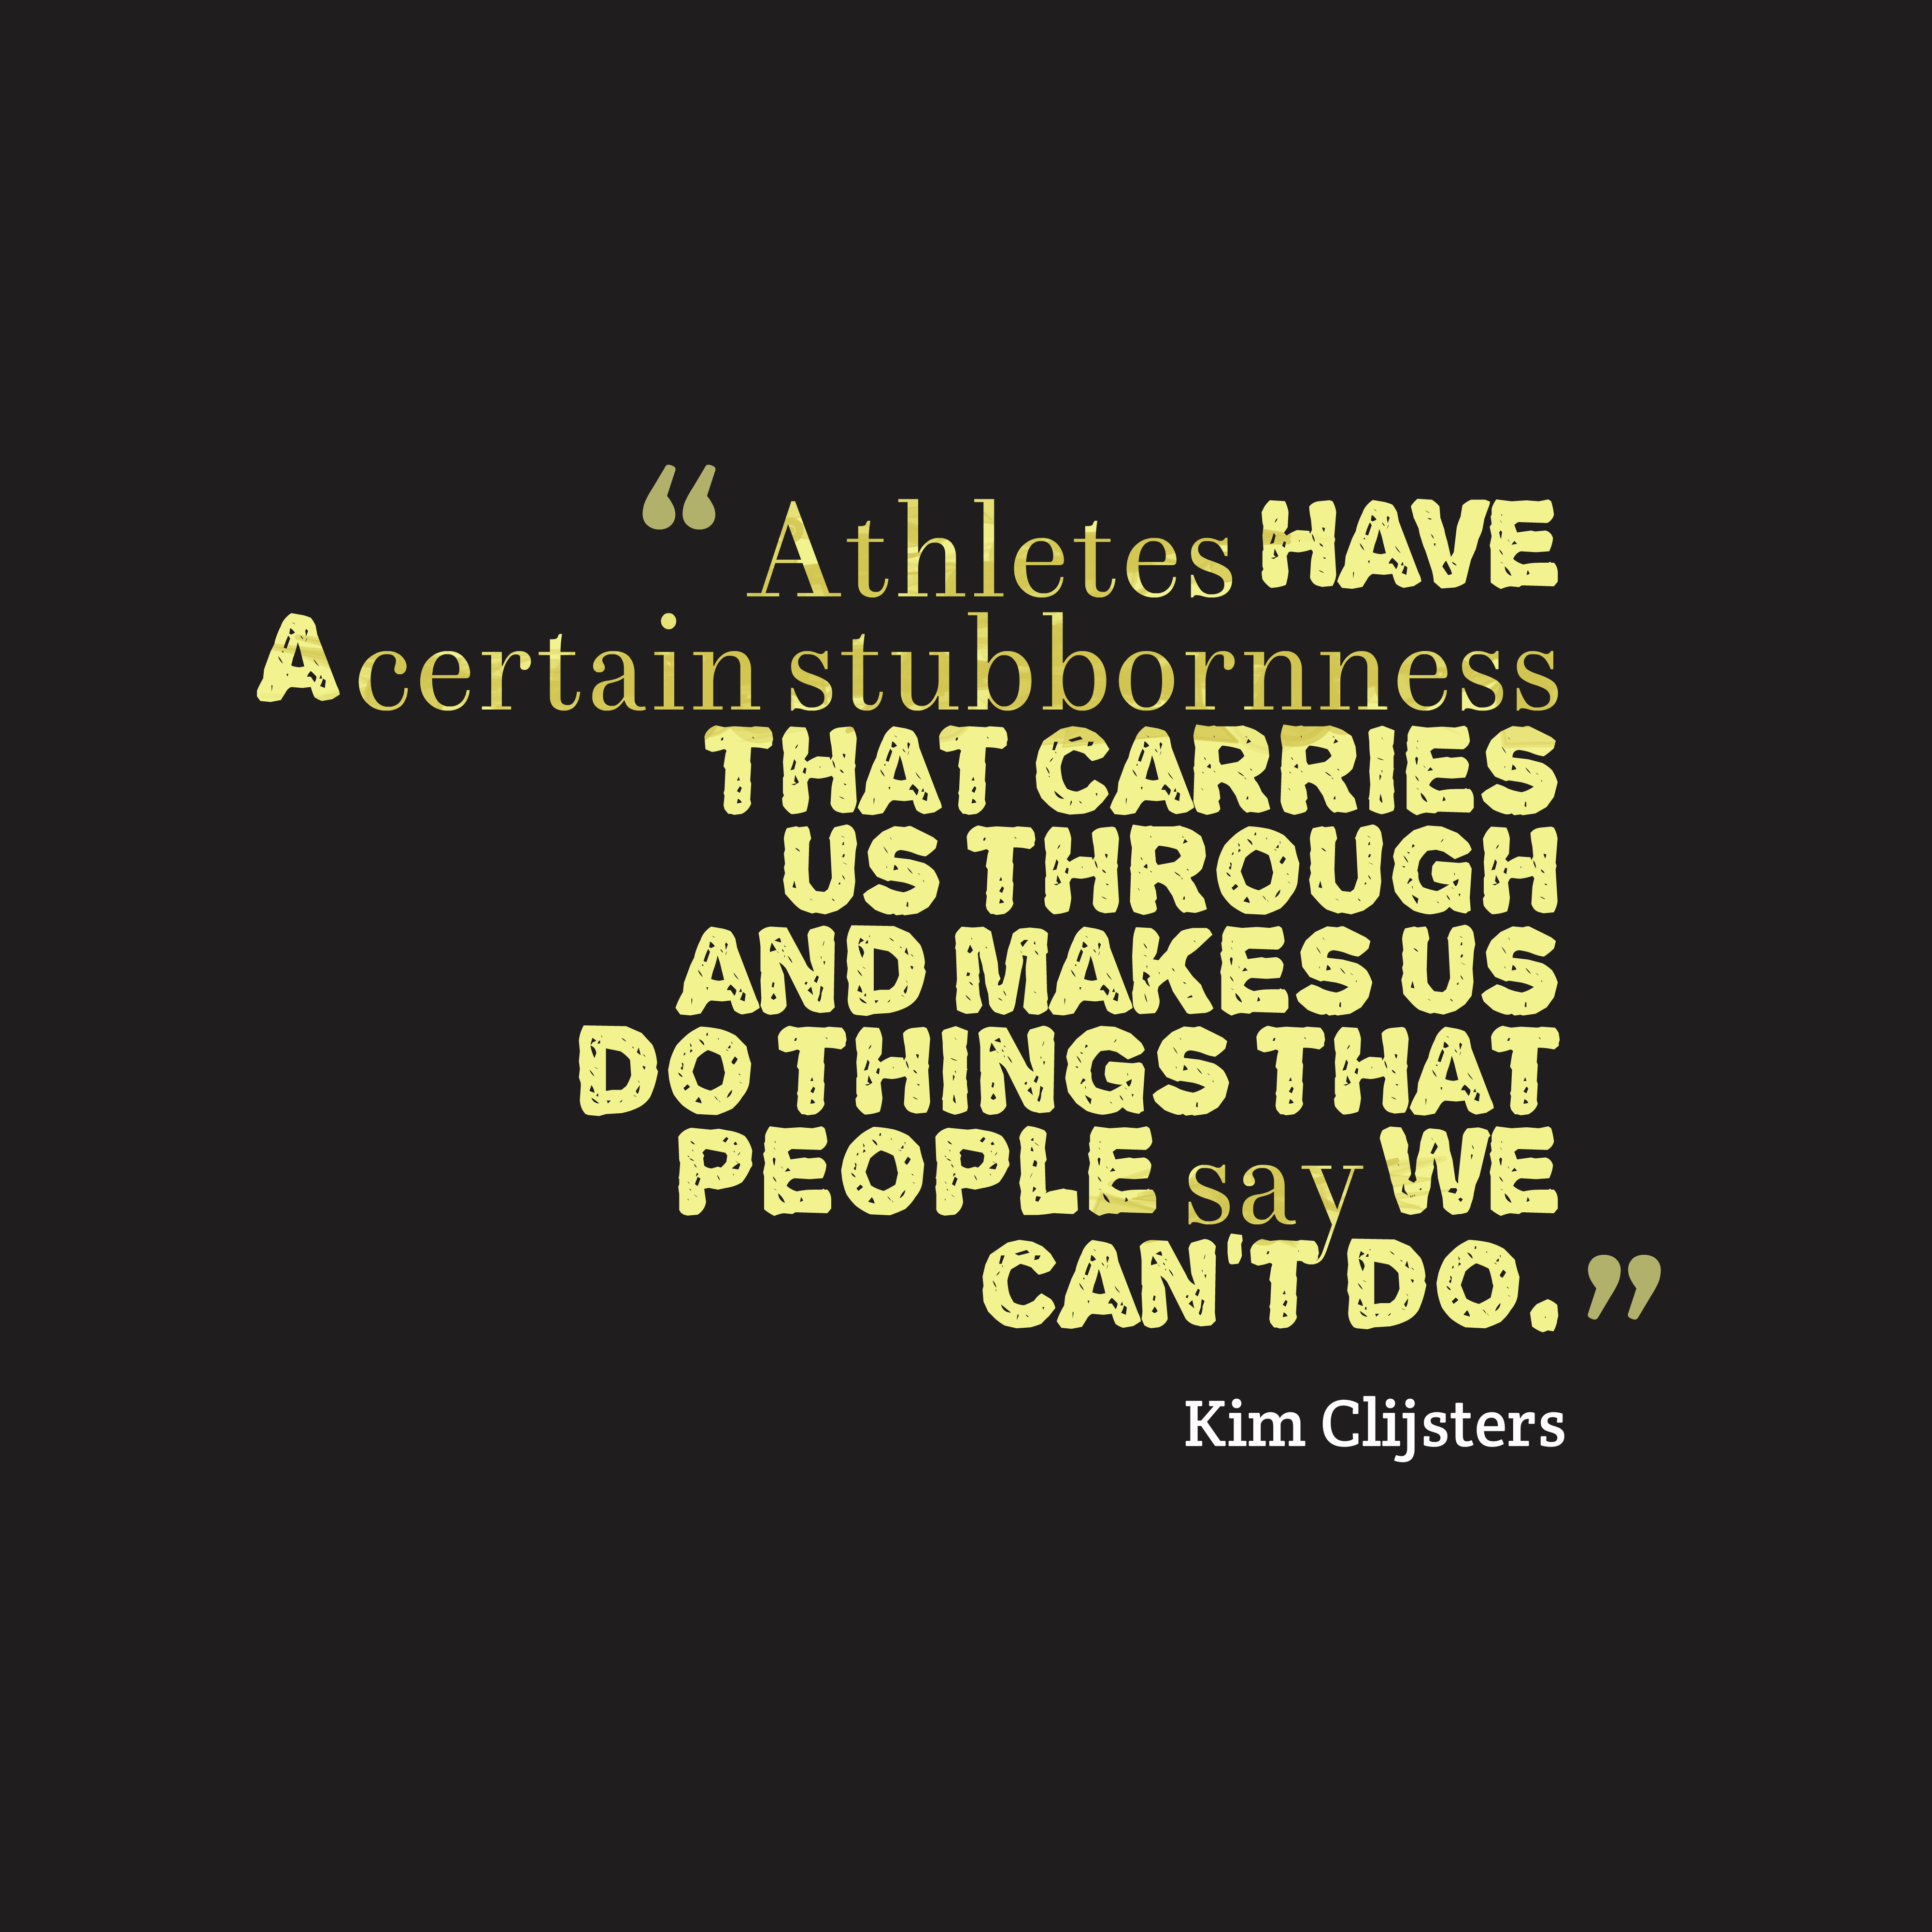 Quotes image of Athletes have a certain stubbornness that carries us through and makes us do things that people say we can't do.